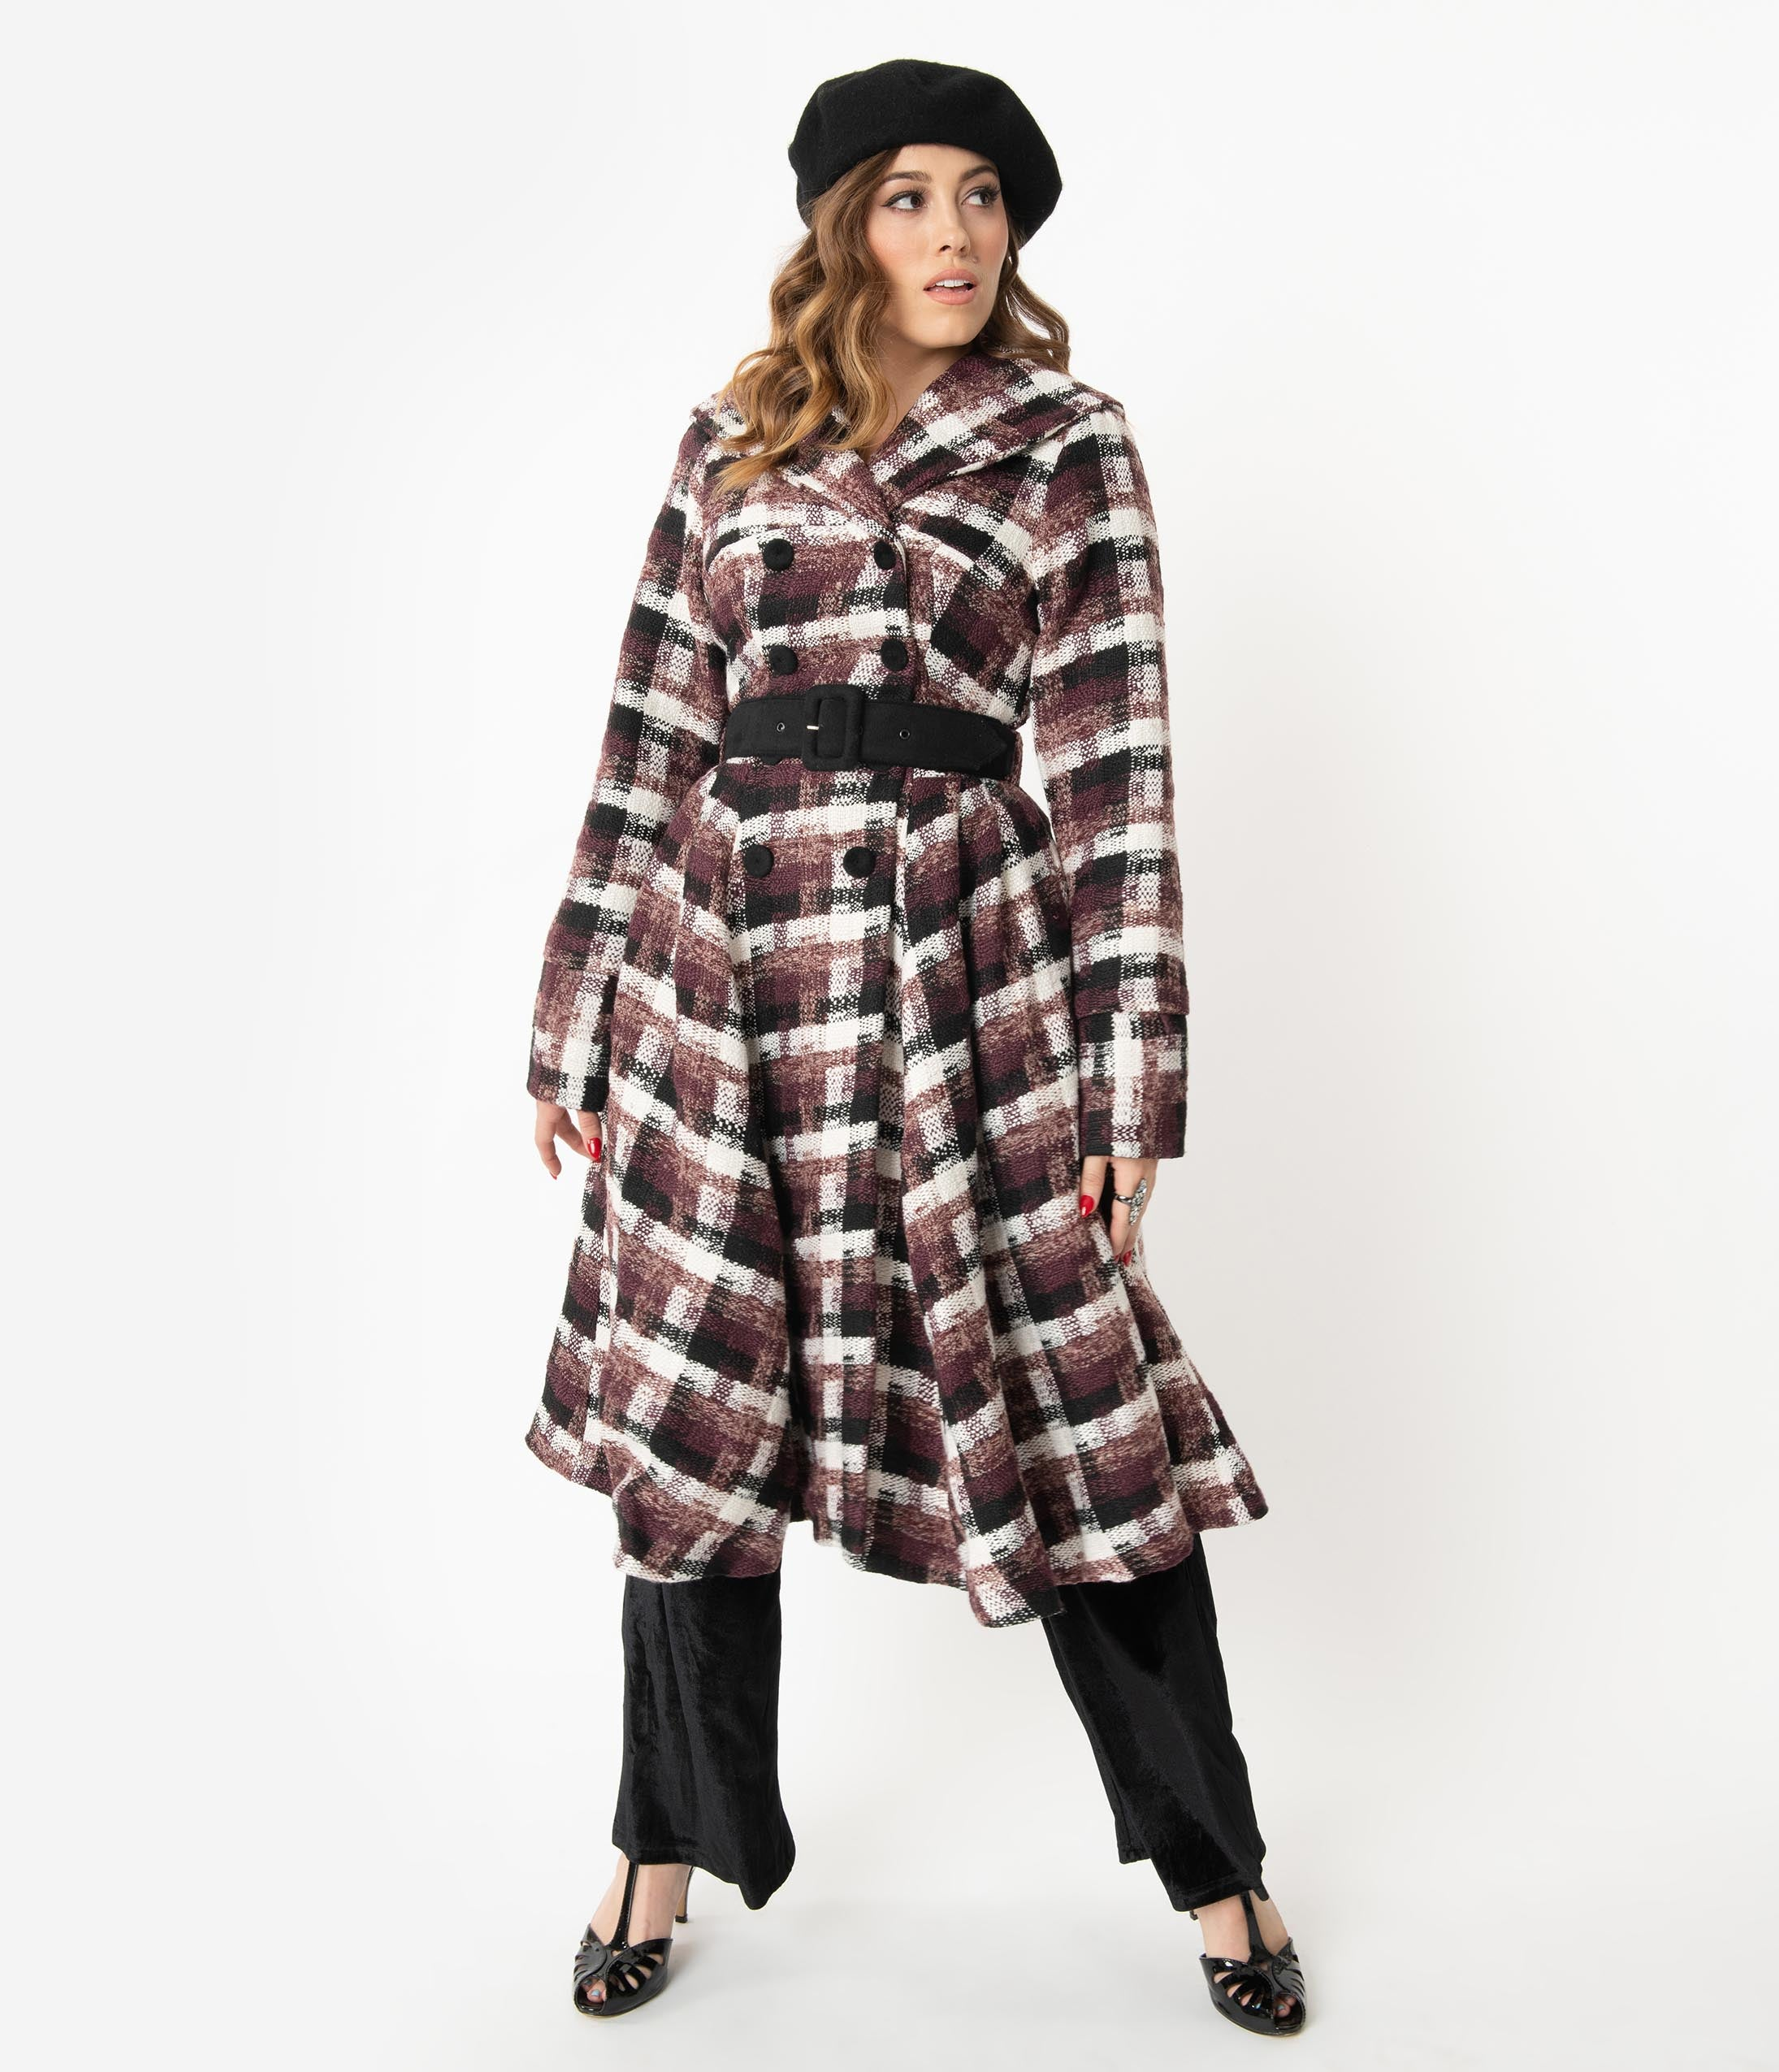 1940s Coats & Jackets Fashion History Miss Candyfloss Plaid Belted Teagan Coat $198.00 AT vintagedancer.com